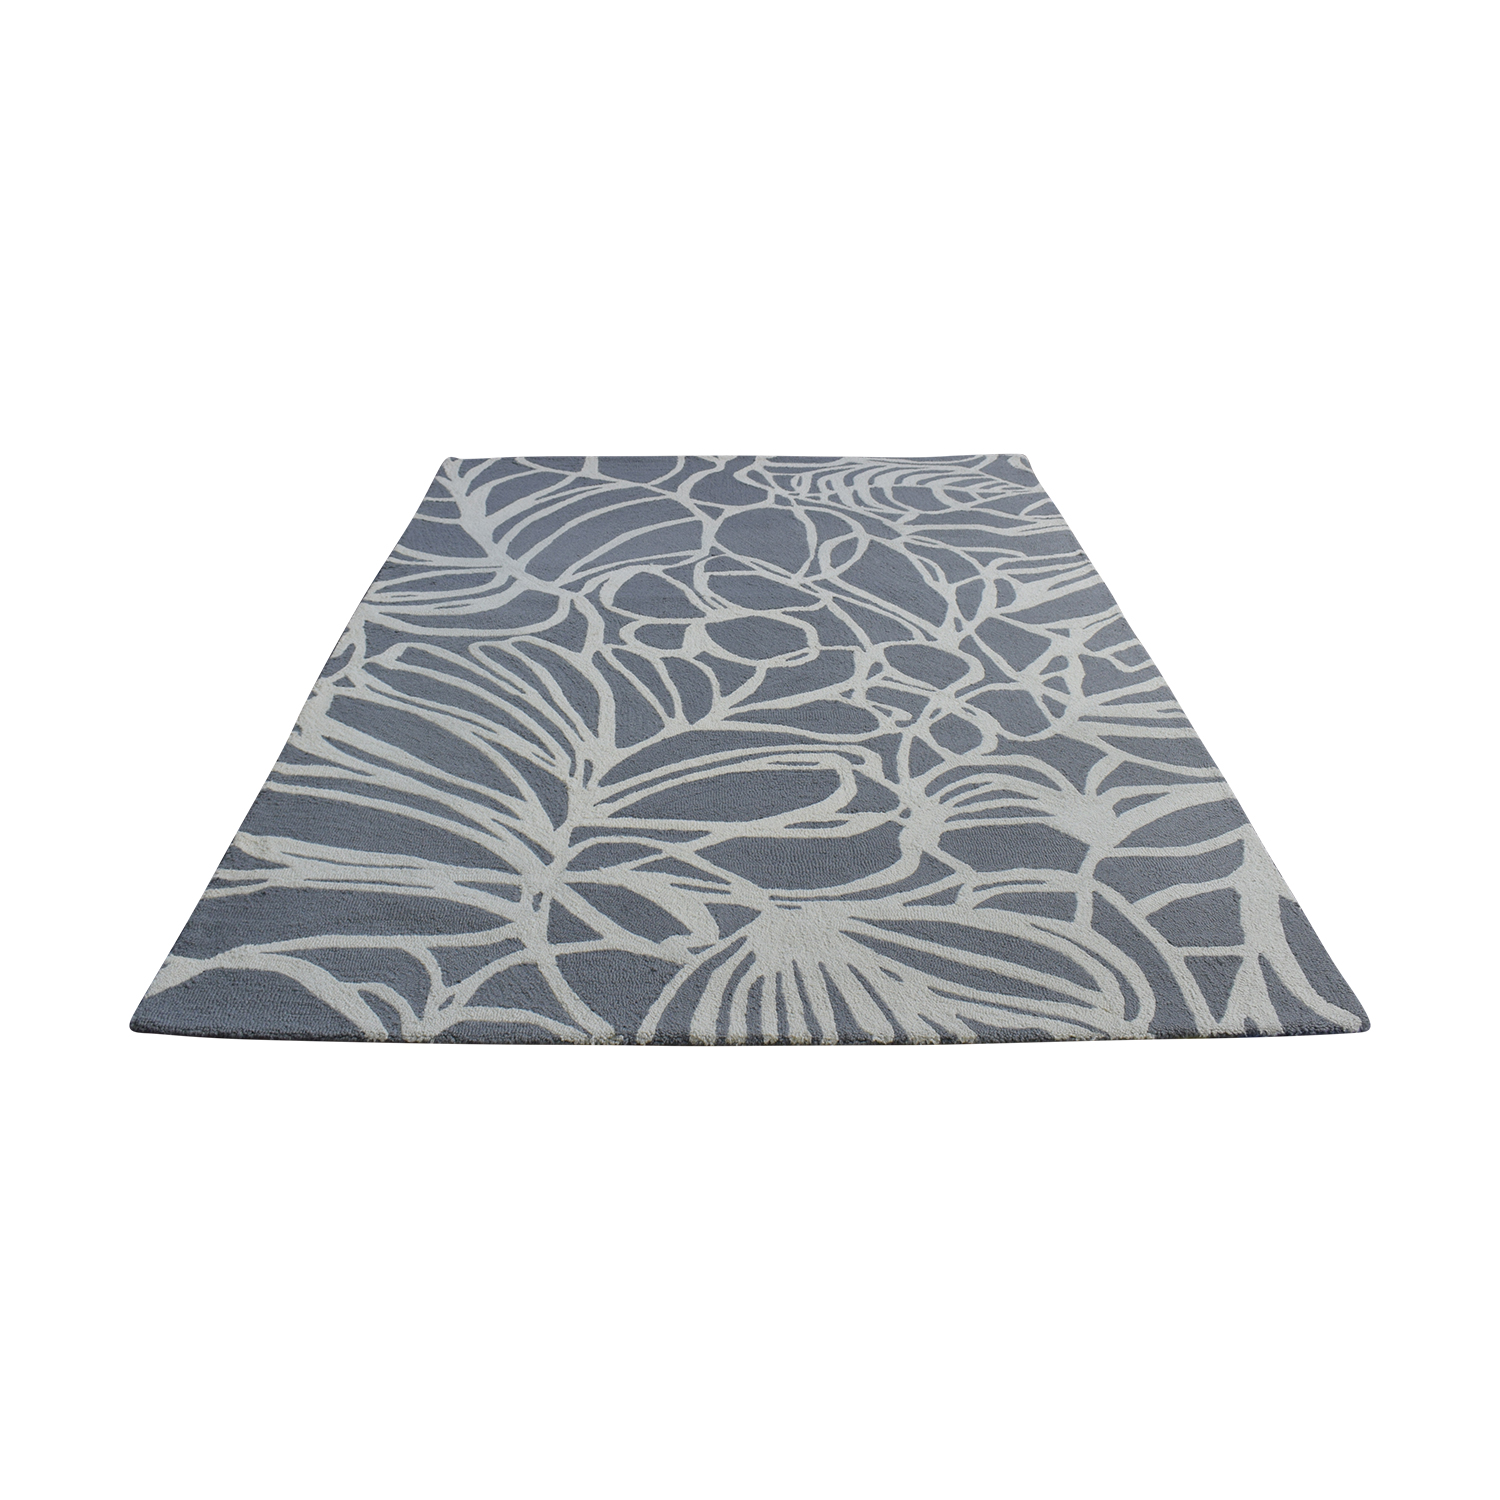 West Elm West Elm Sketch Rug second hand